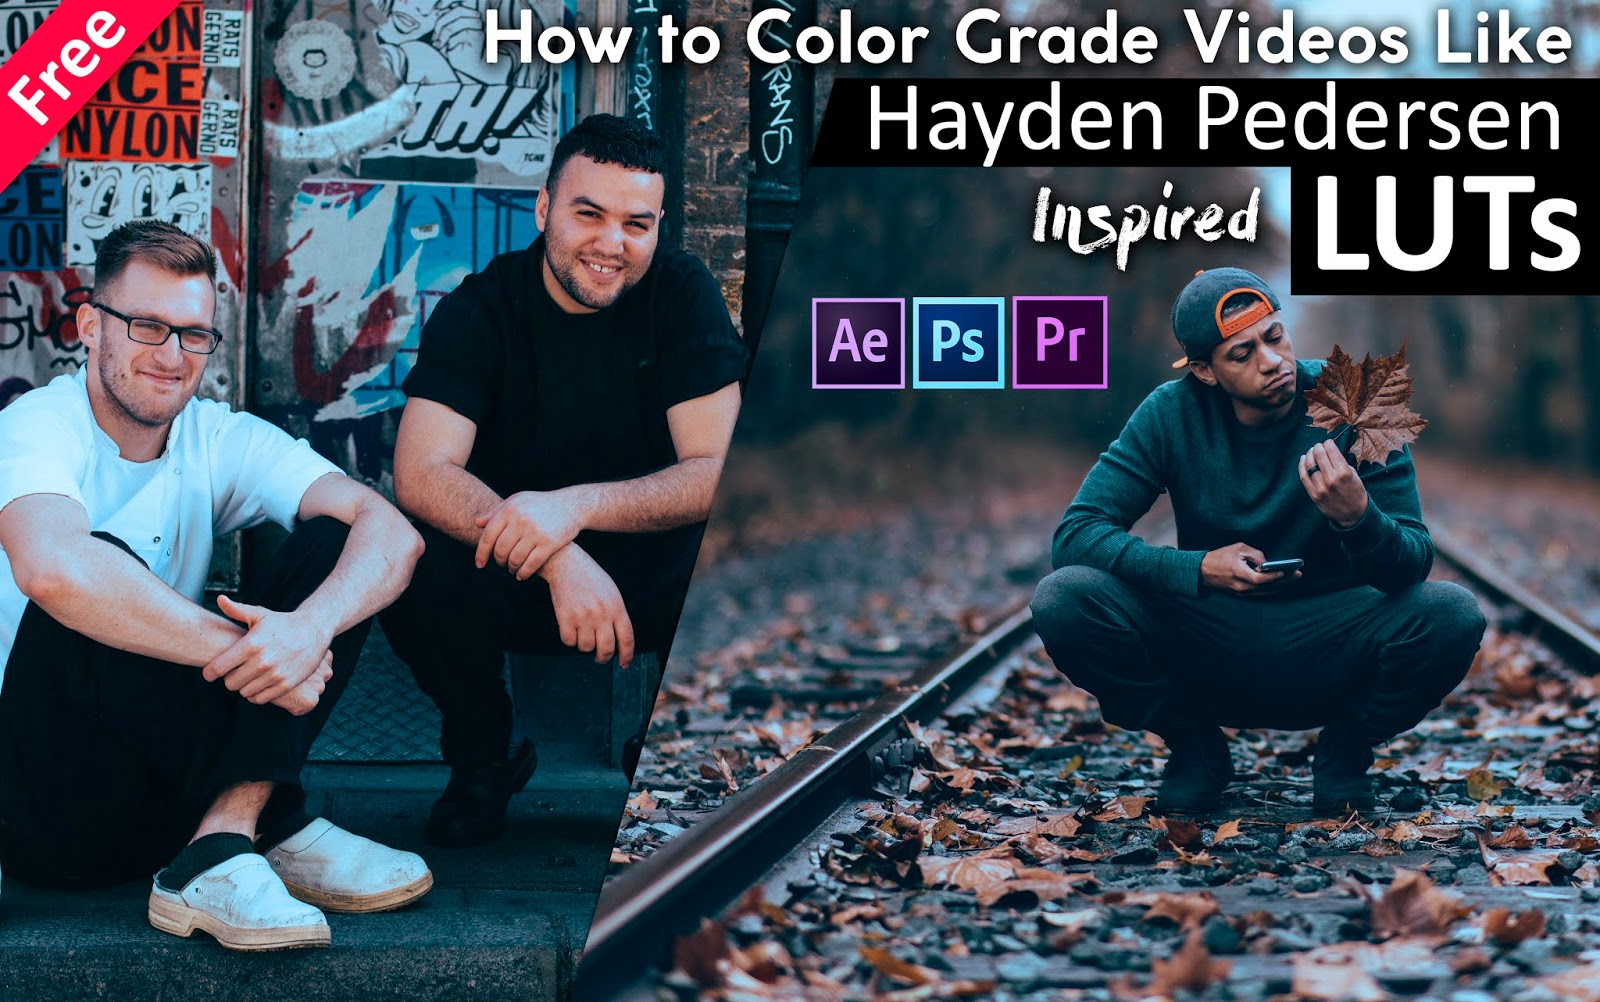 Download Hayden Pedersen Inspired LUTs for Free   How to Color Grade Your Videos in Adobe After Effects, Premiere Pro, Photoshop